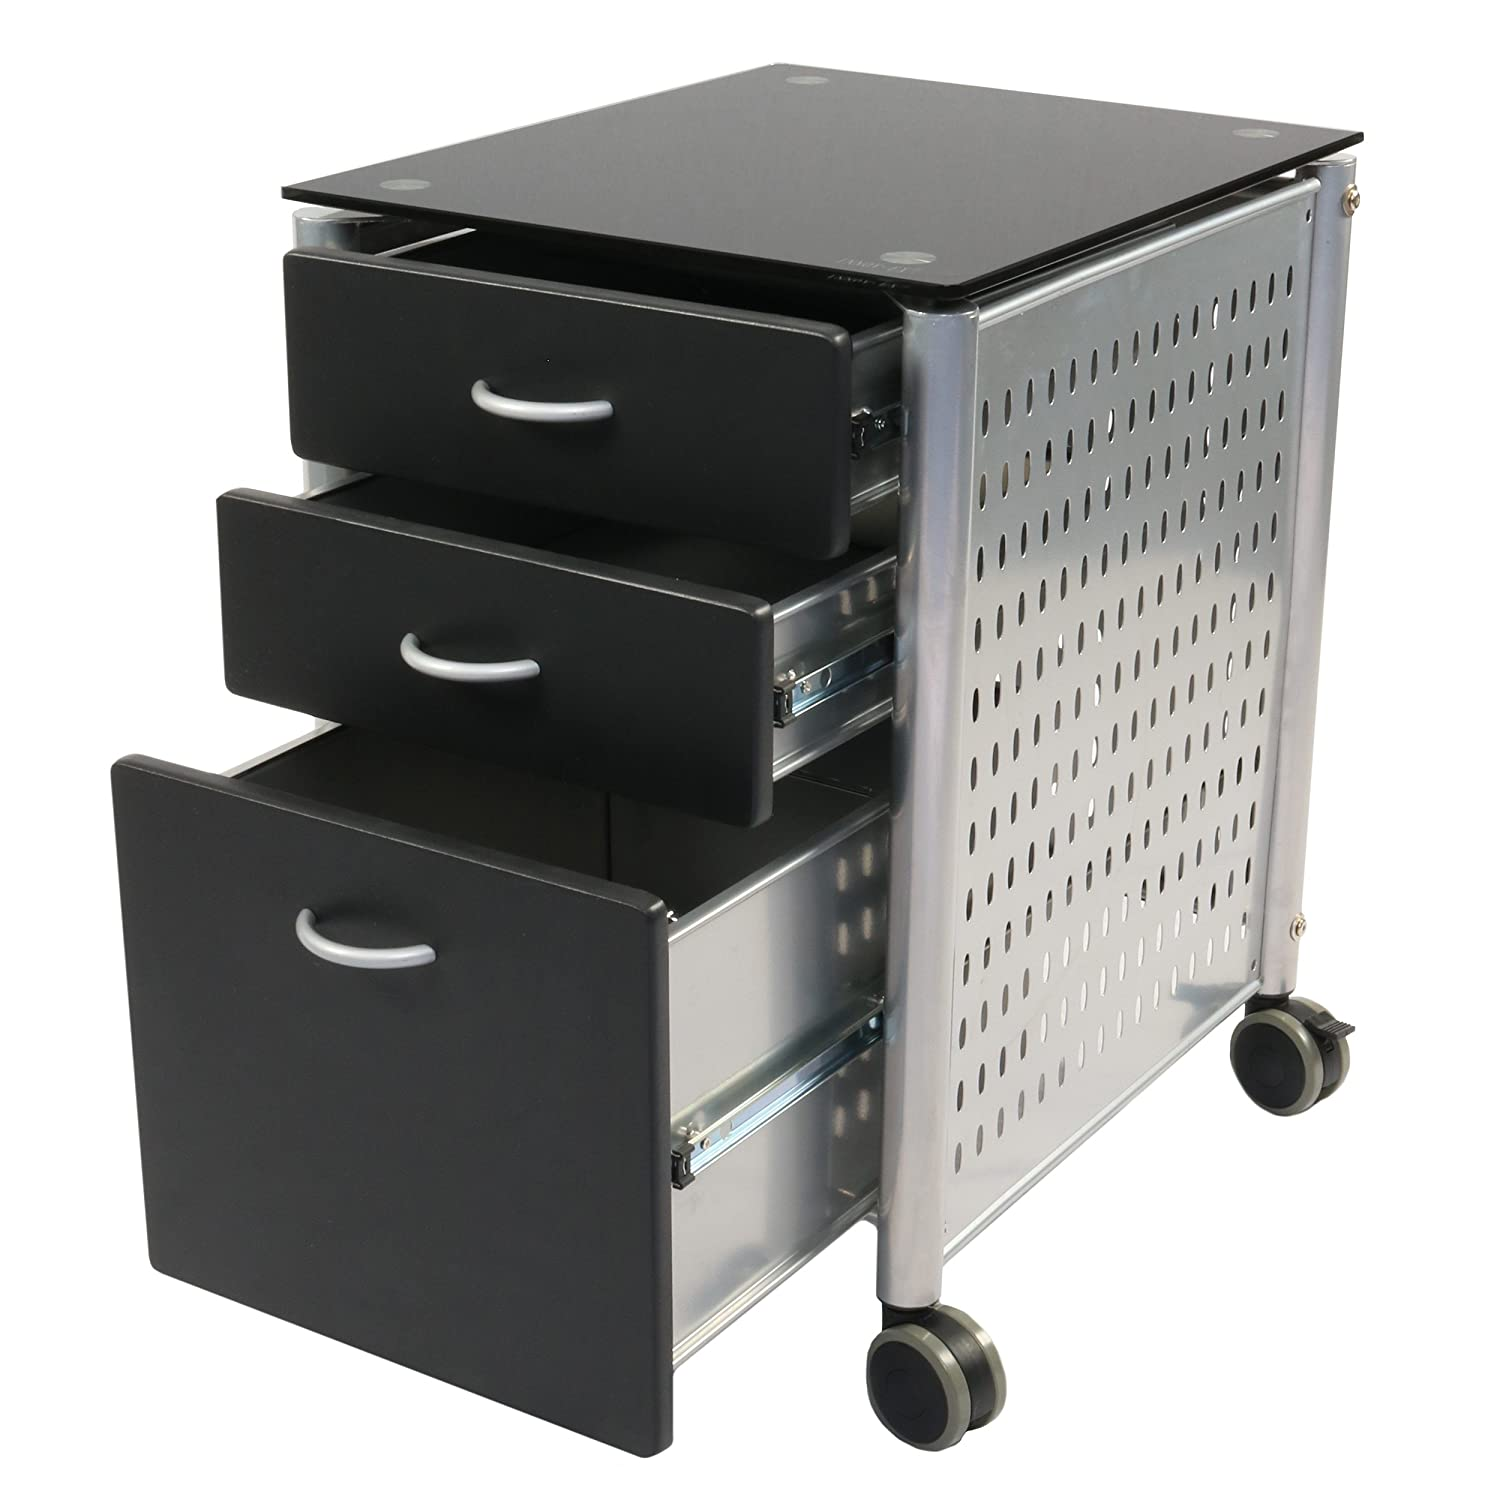 Innovex SKG02G29 Archive mobile glass top metal filing cabinet with 3 storage drawers and locking caster wheels, black